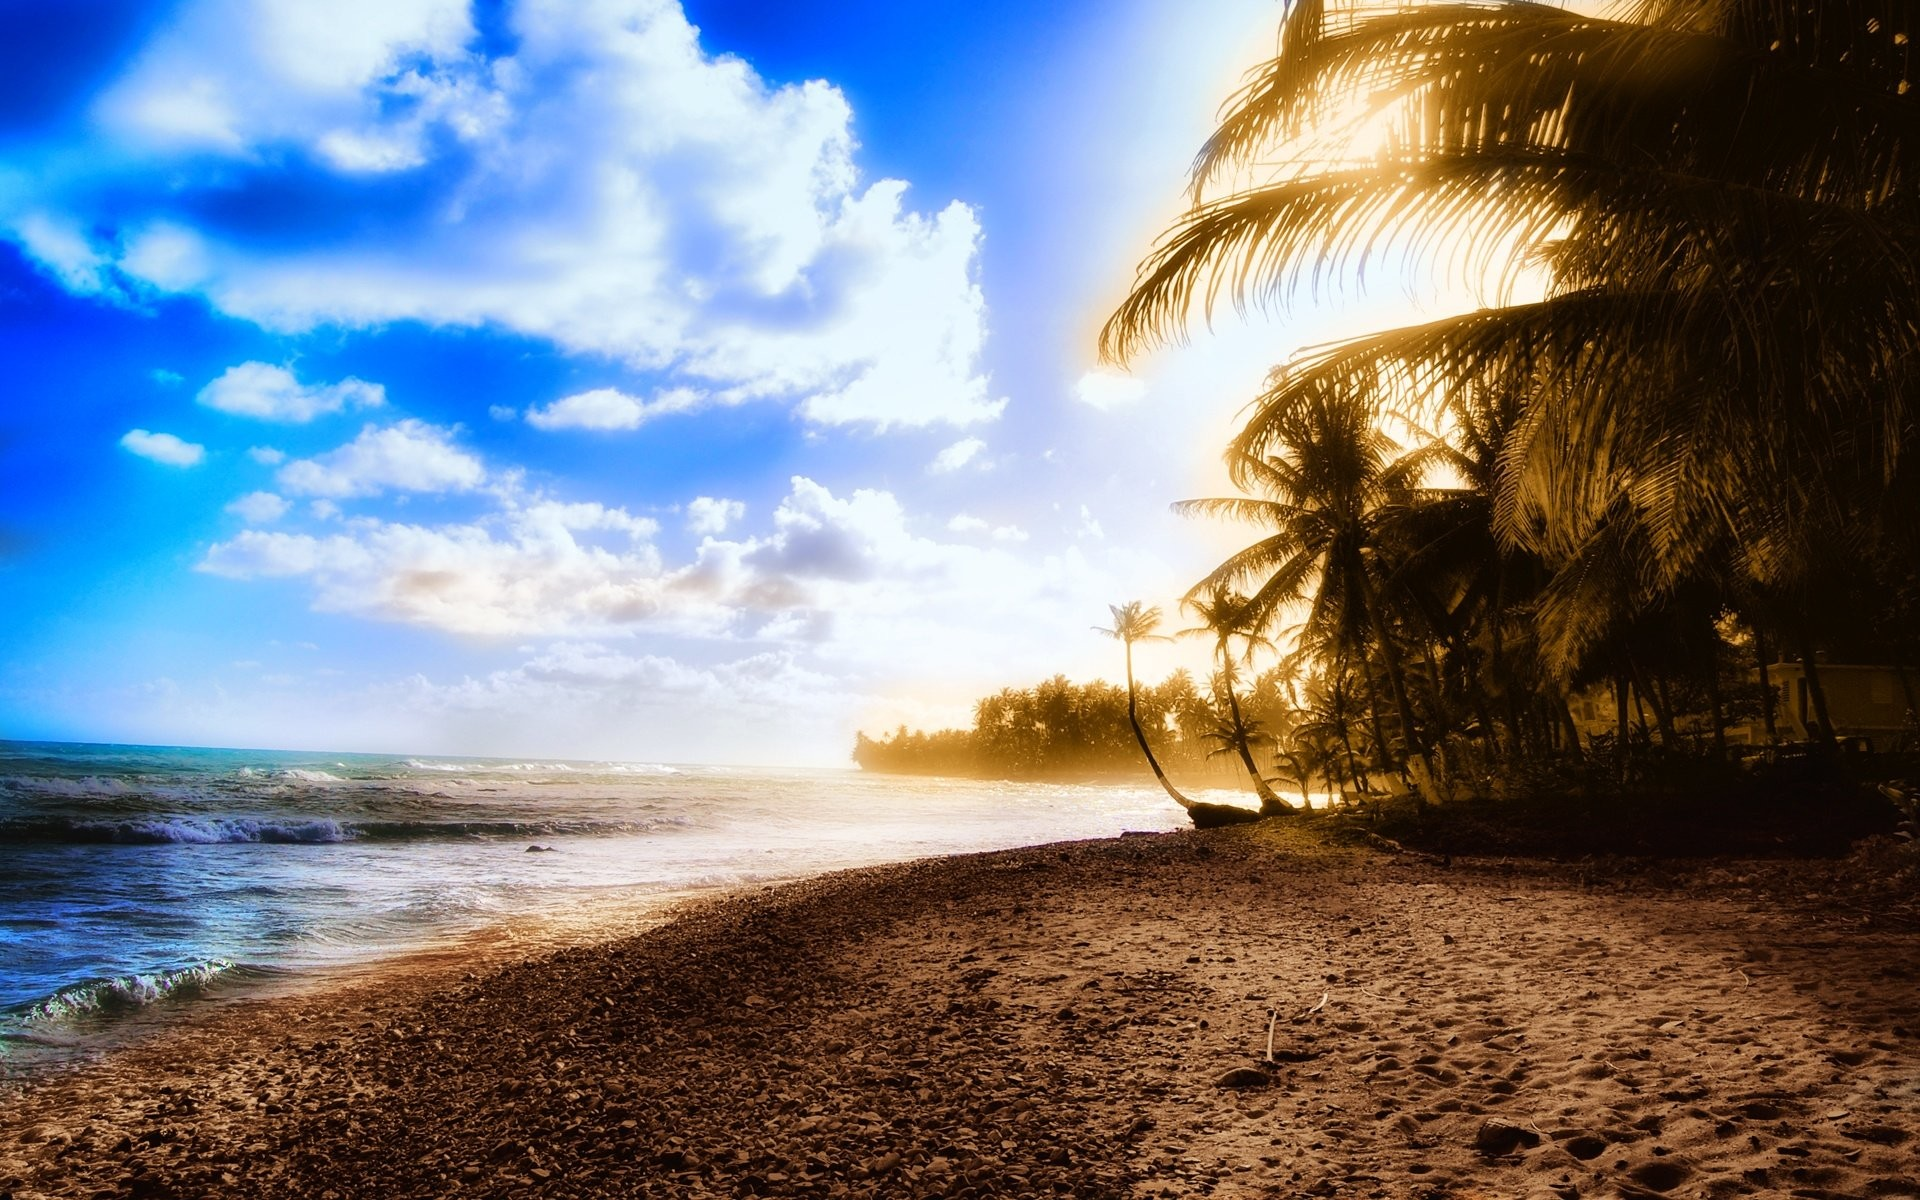 Sunny Beach Wallpapers For Iphone